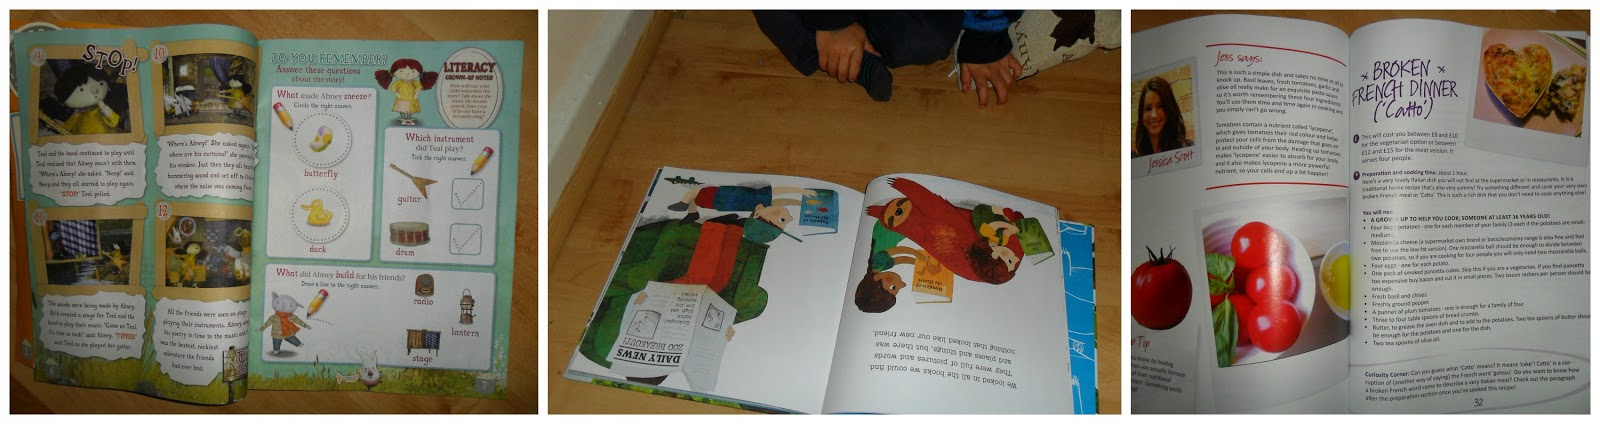 pre school book reviews uk